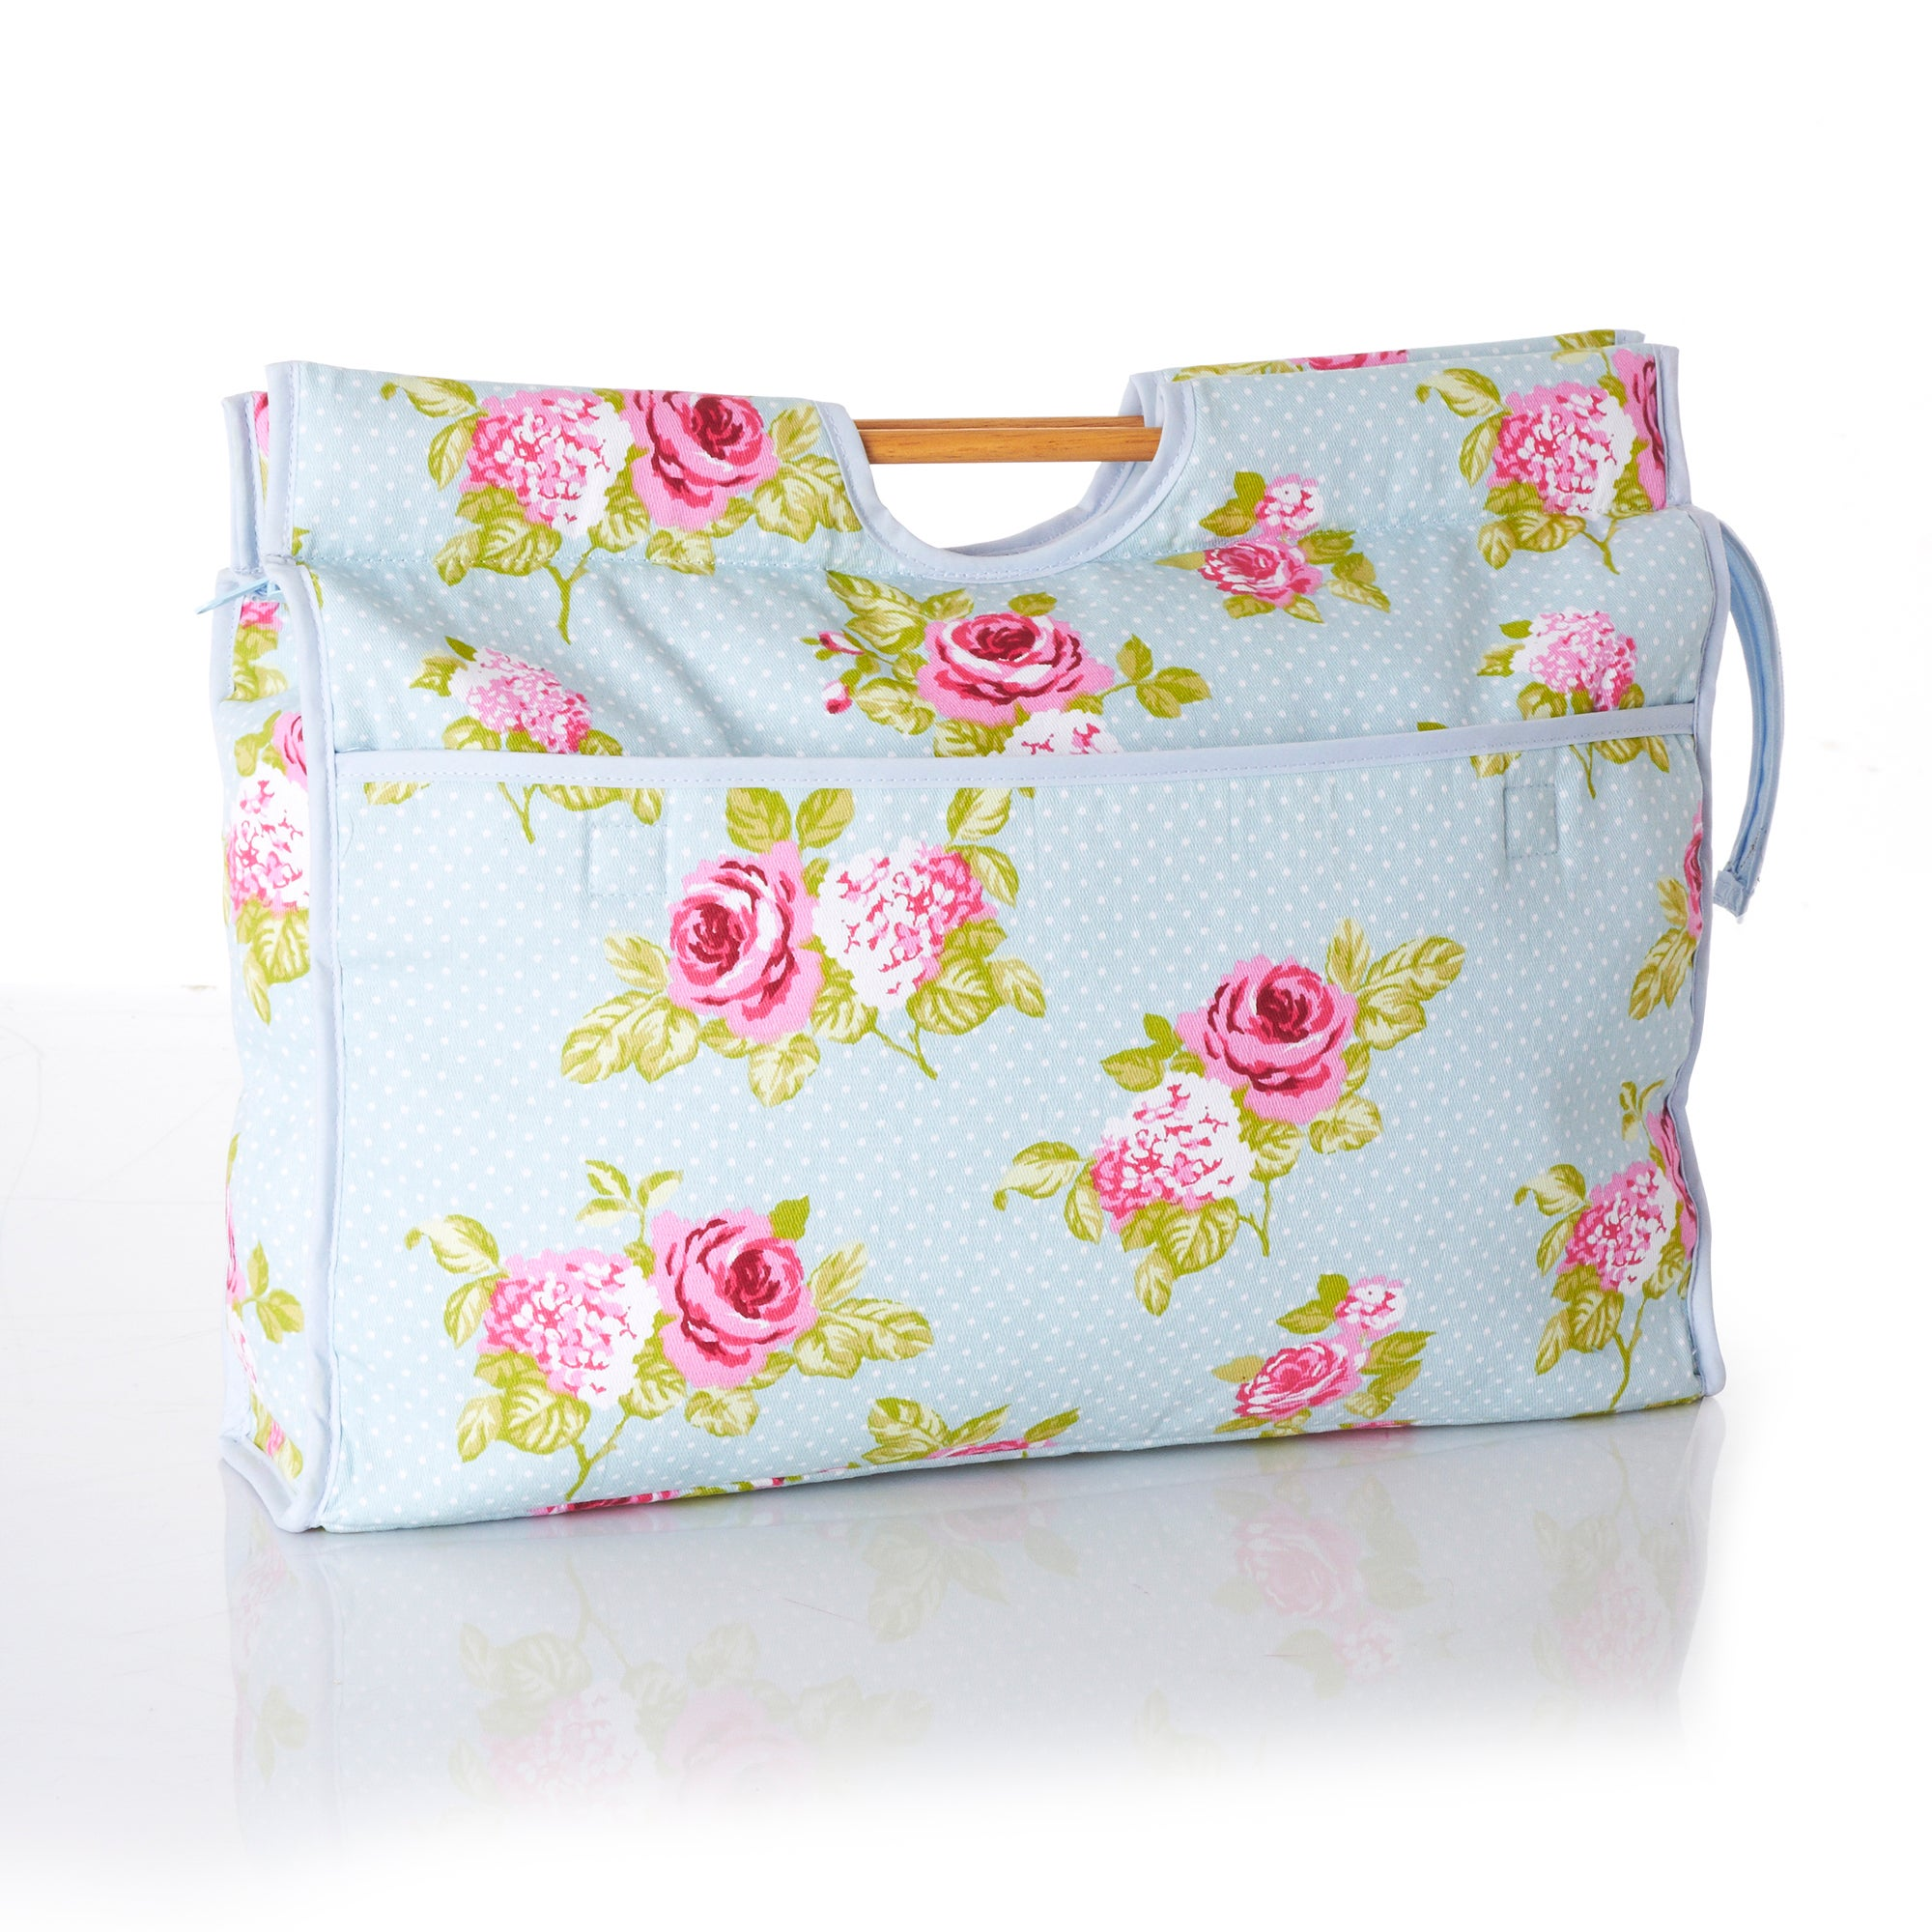 Rose and Ellis Clarendon Collection Craft Bag